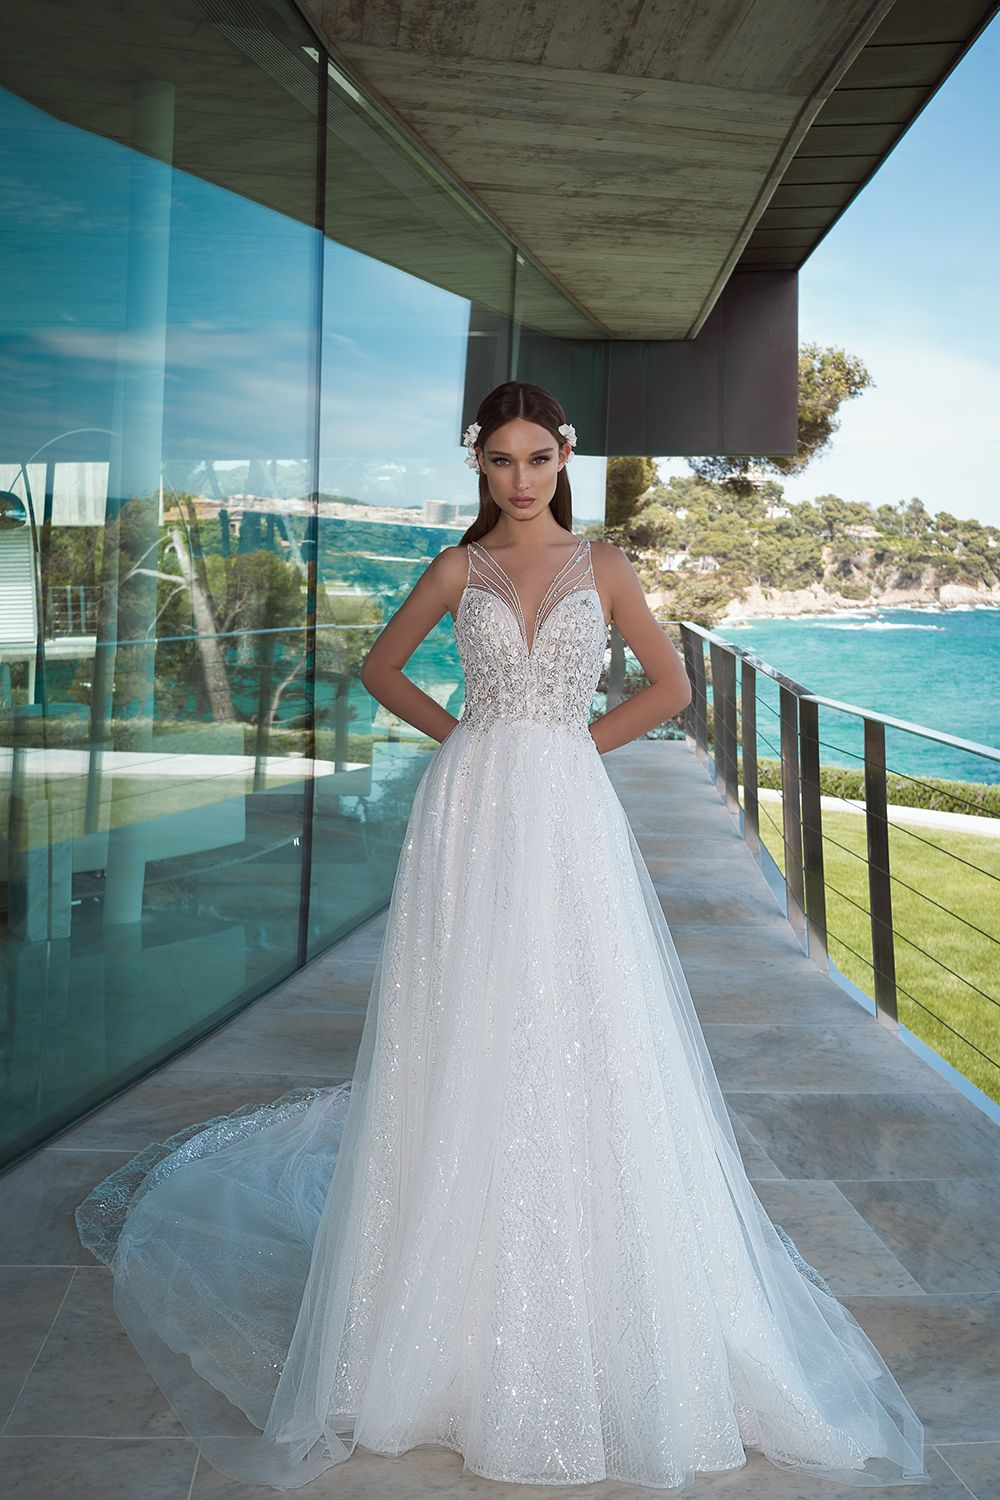 e3641593efe90 Crystal Design – The Icon 2019 Collection – MONDO BRIDAL – Wedding Ideas,  Planning & Inspiration – The International Bride